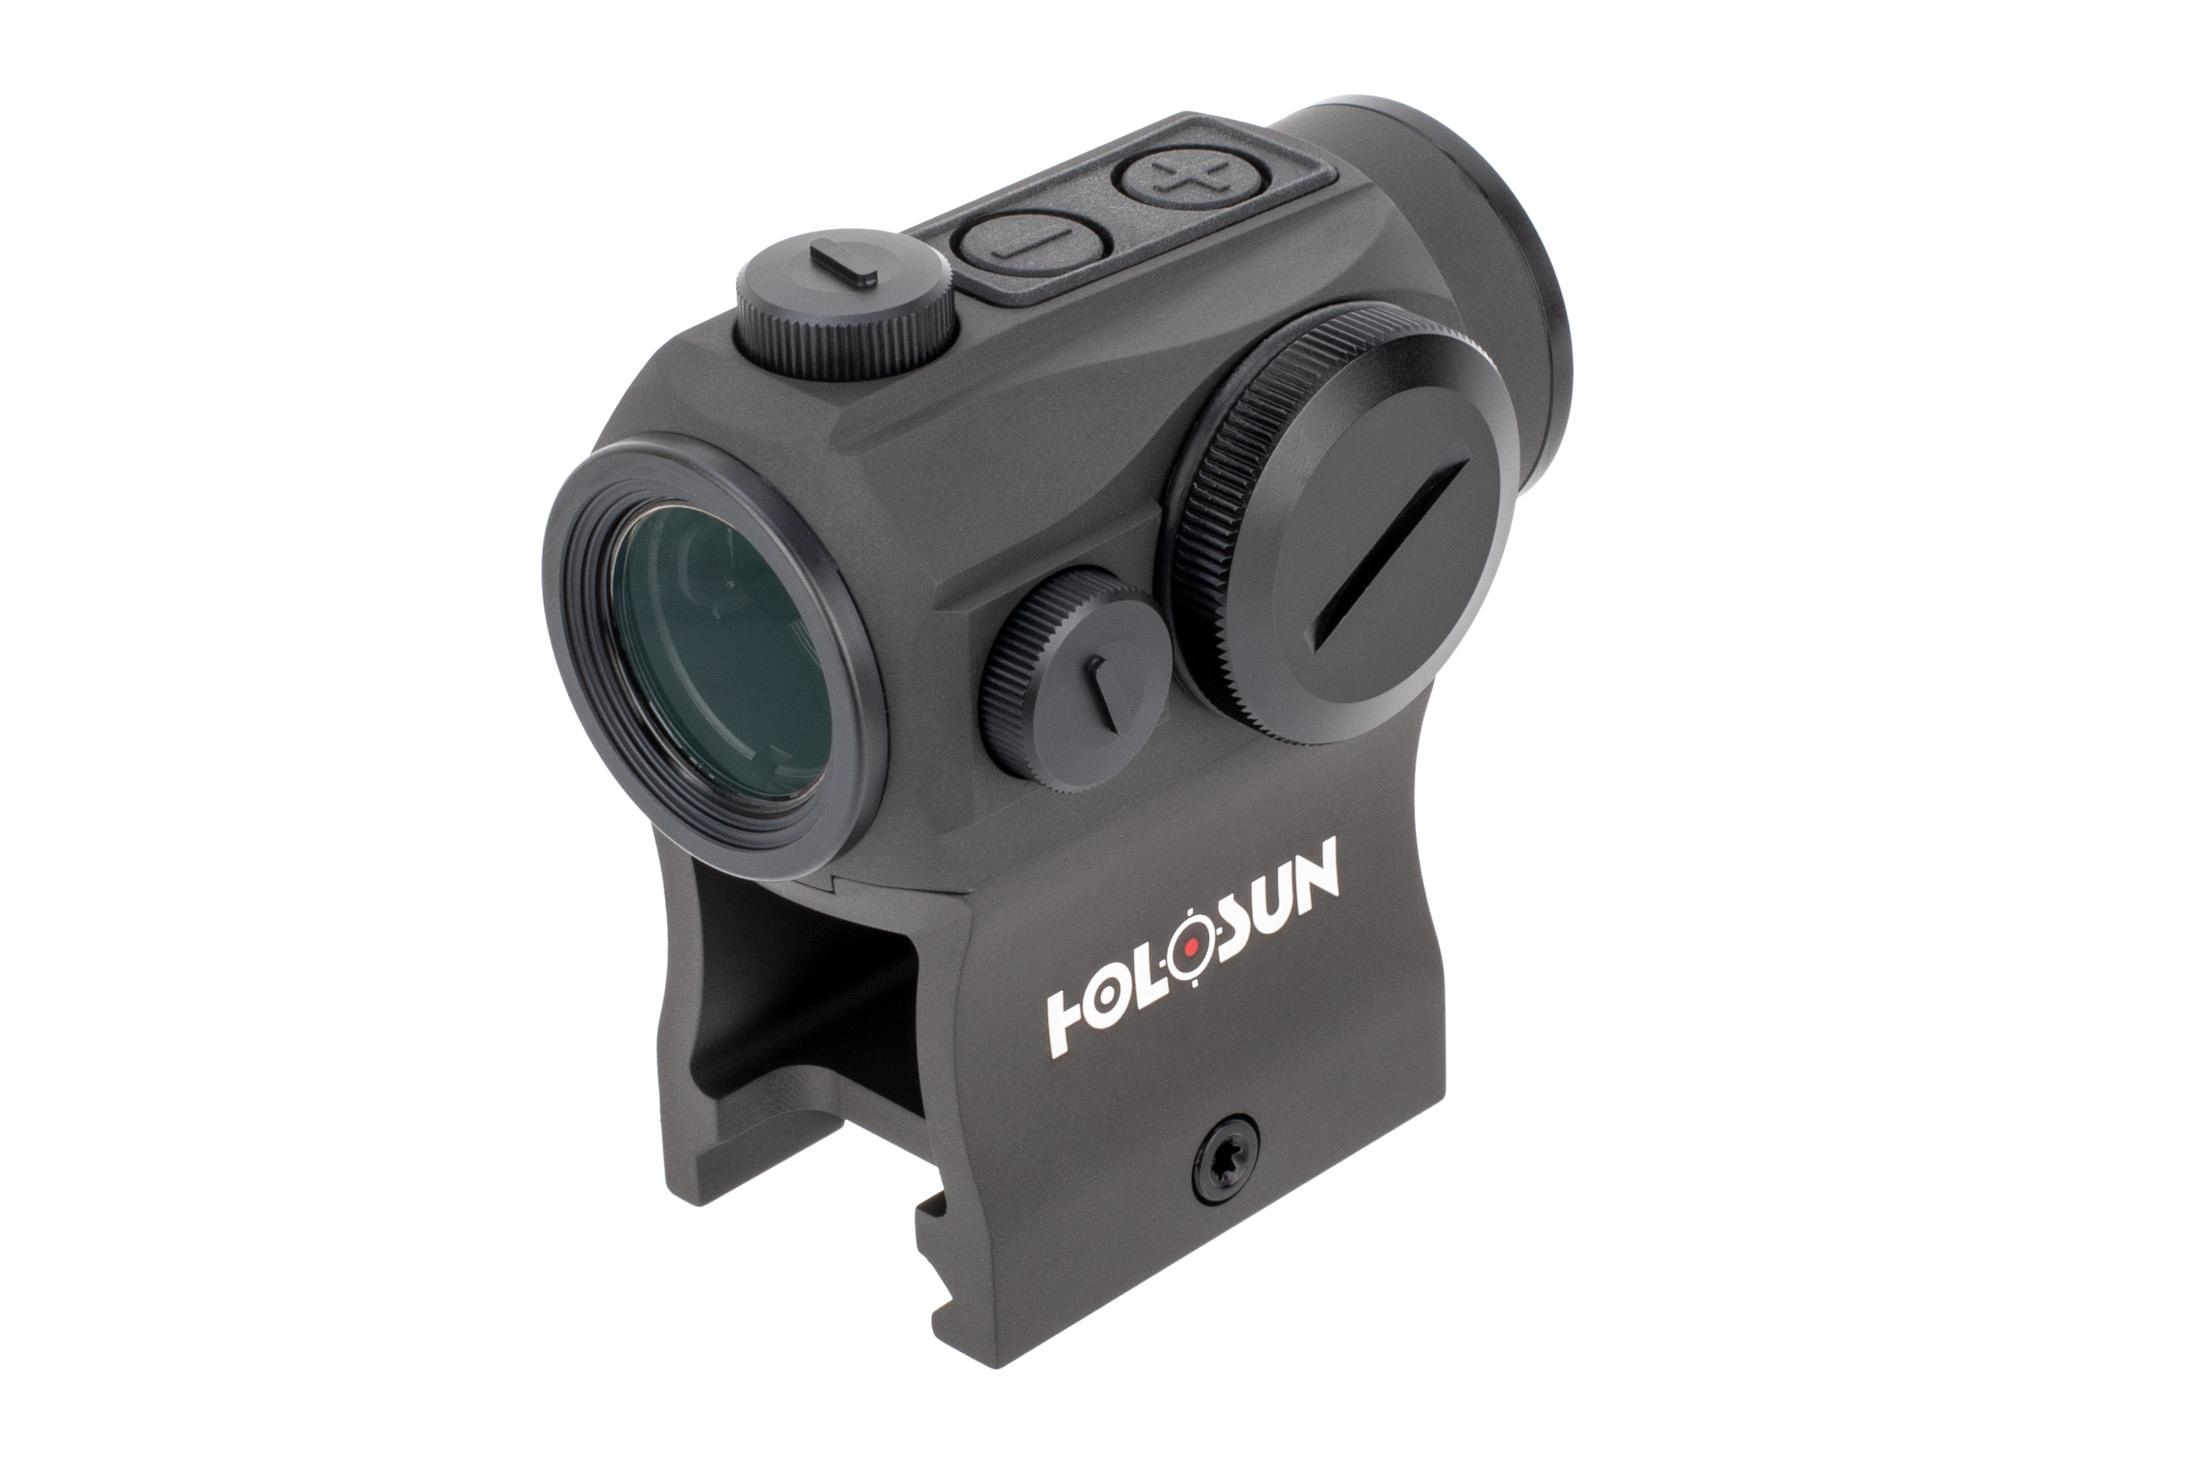 The Holosun Paralow HS503G Red Dot Sight with ACSS CQB Reticle features accurate bdc